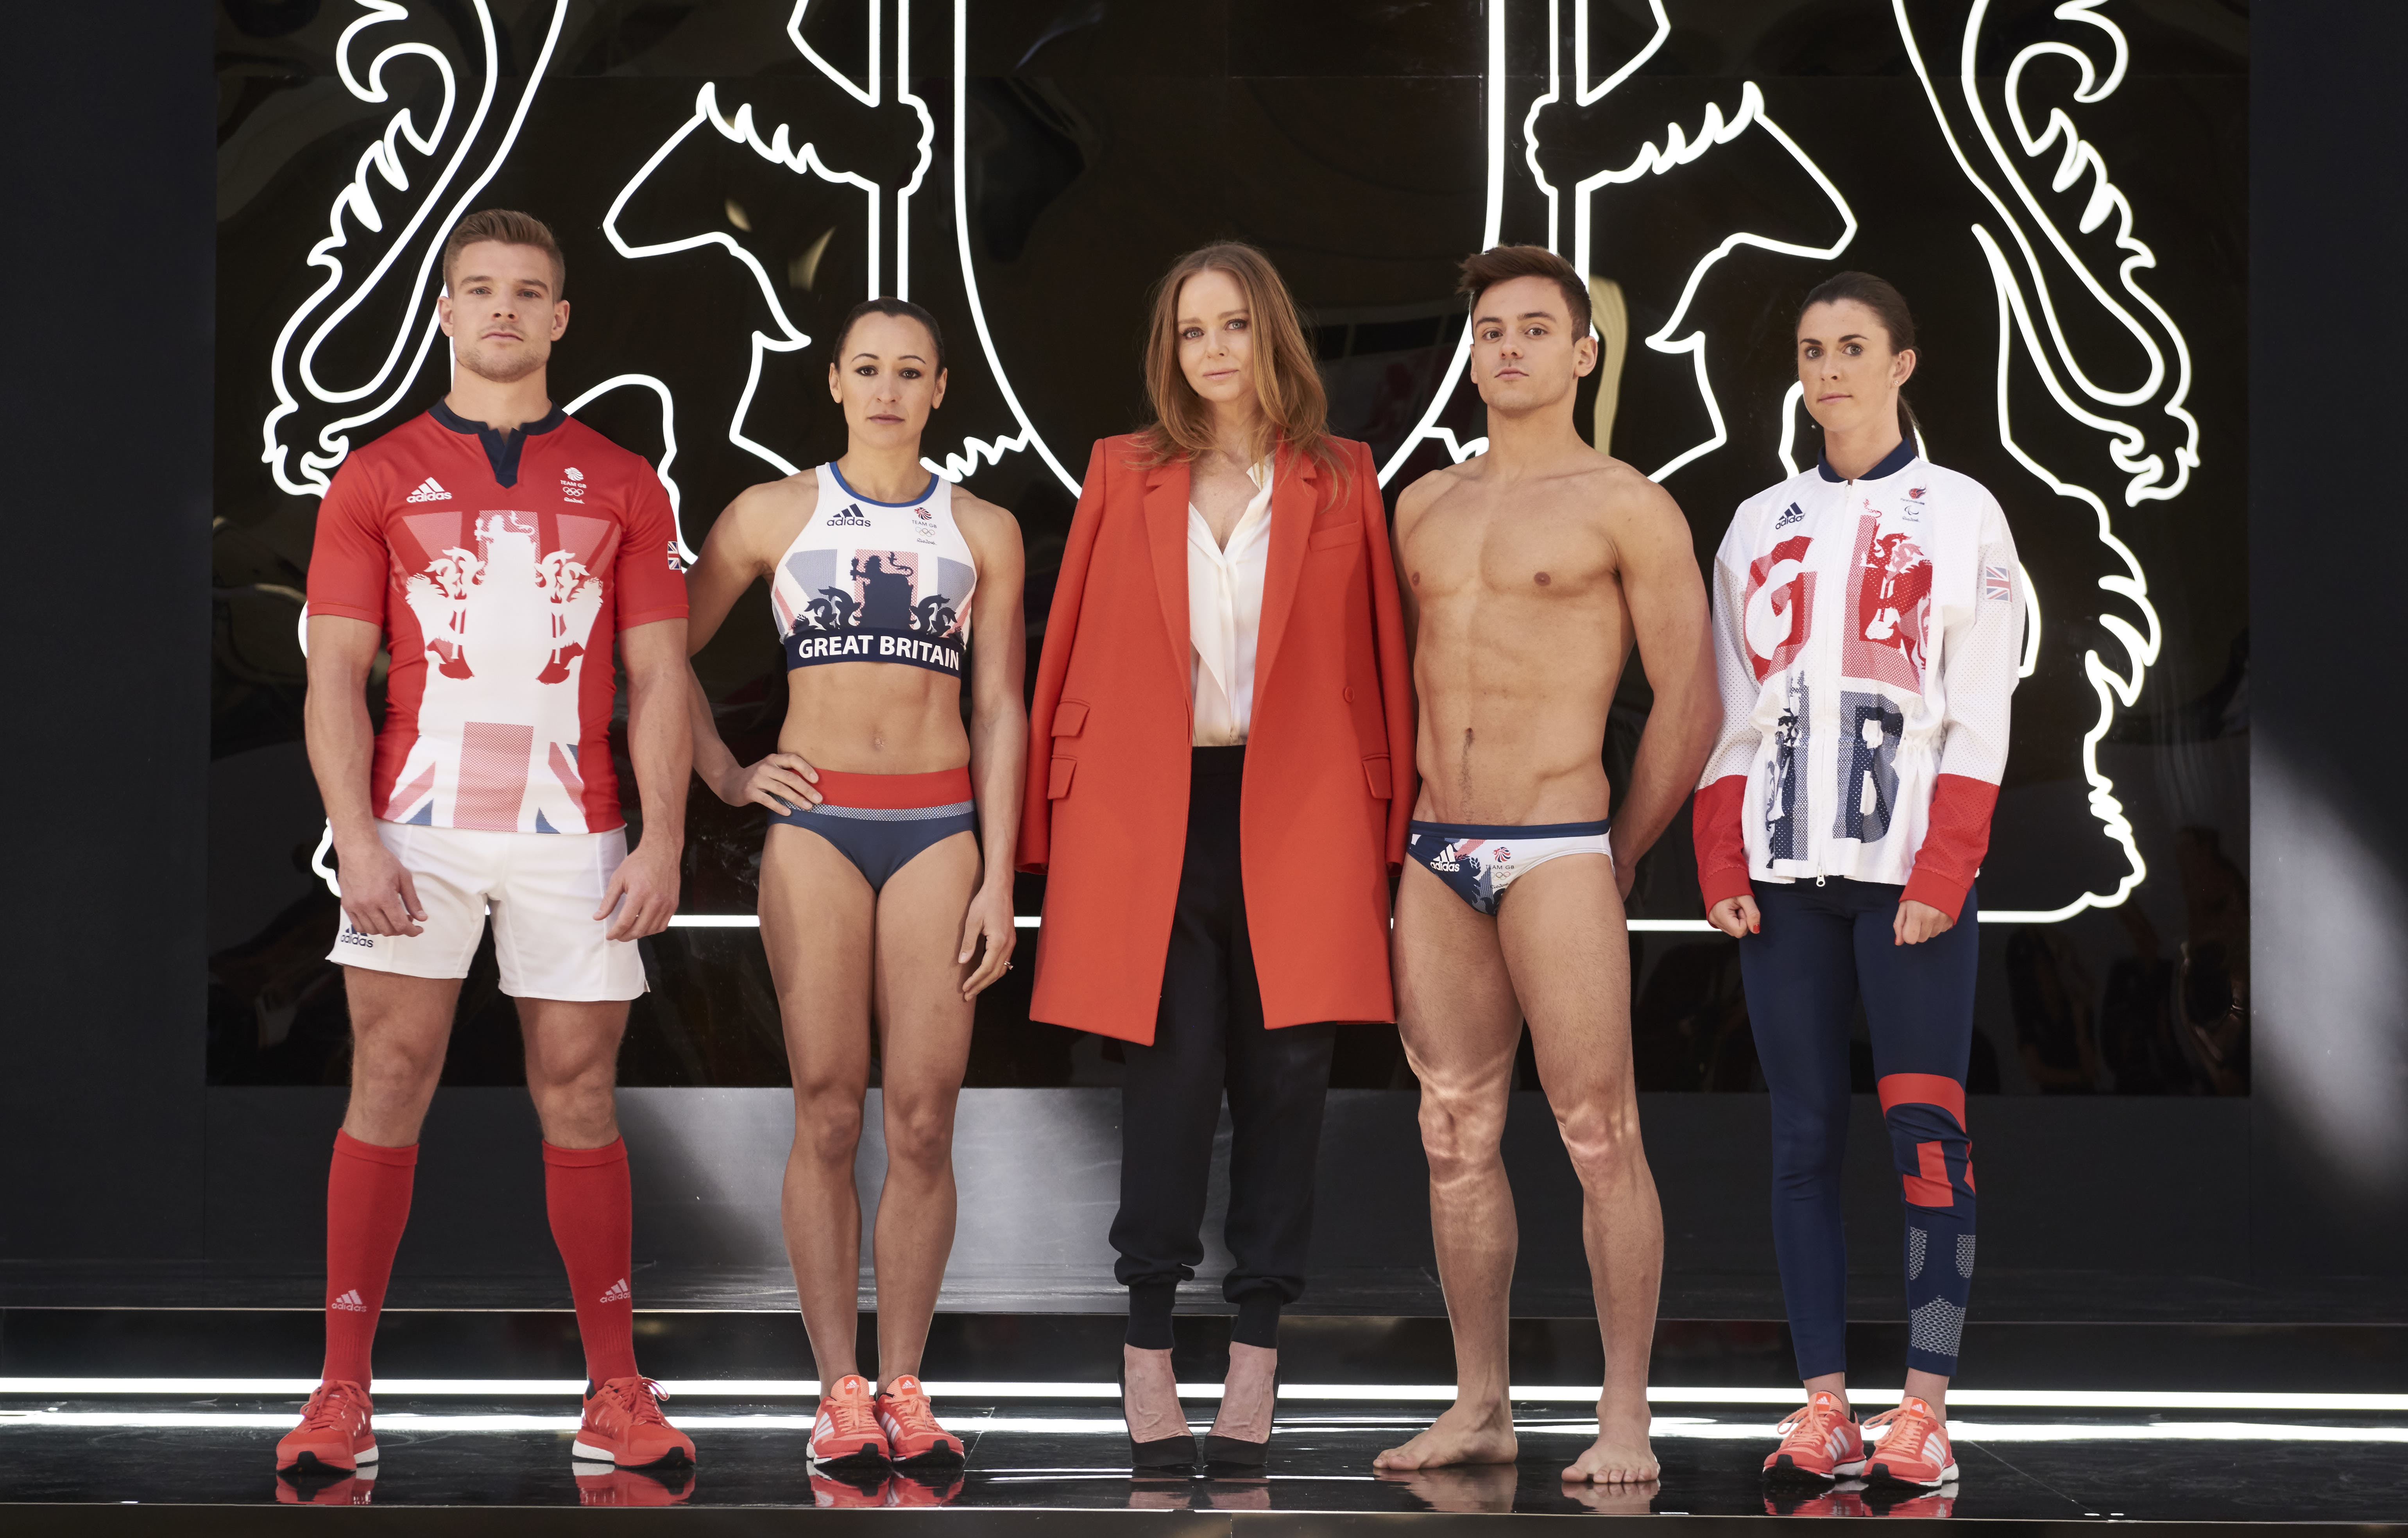 Tom Mitchell, Jessica Ennis-Hill, Stella McCartney, Tom Daley, Olivia Breen in the gear designed for Great Britain for Rio.